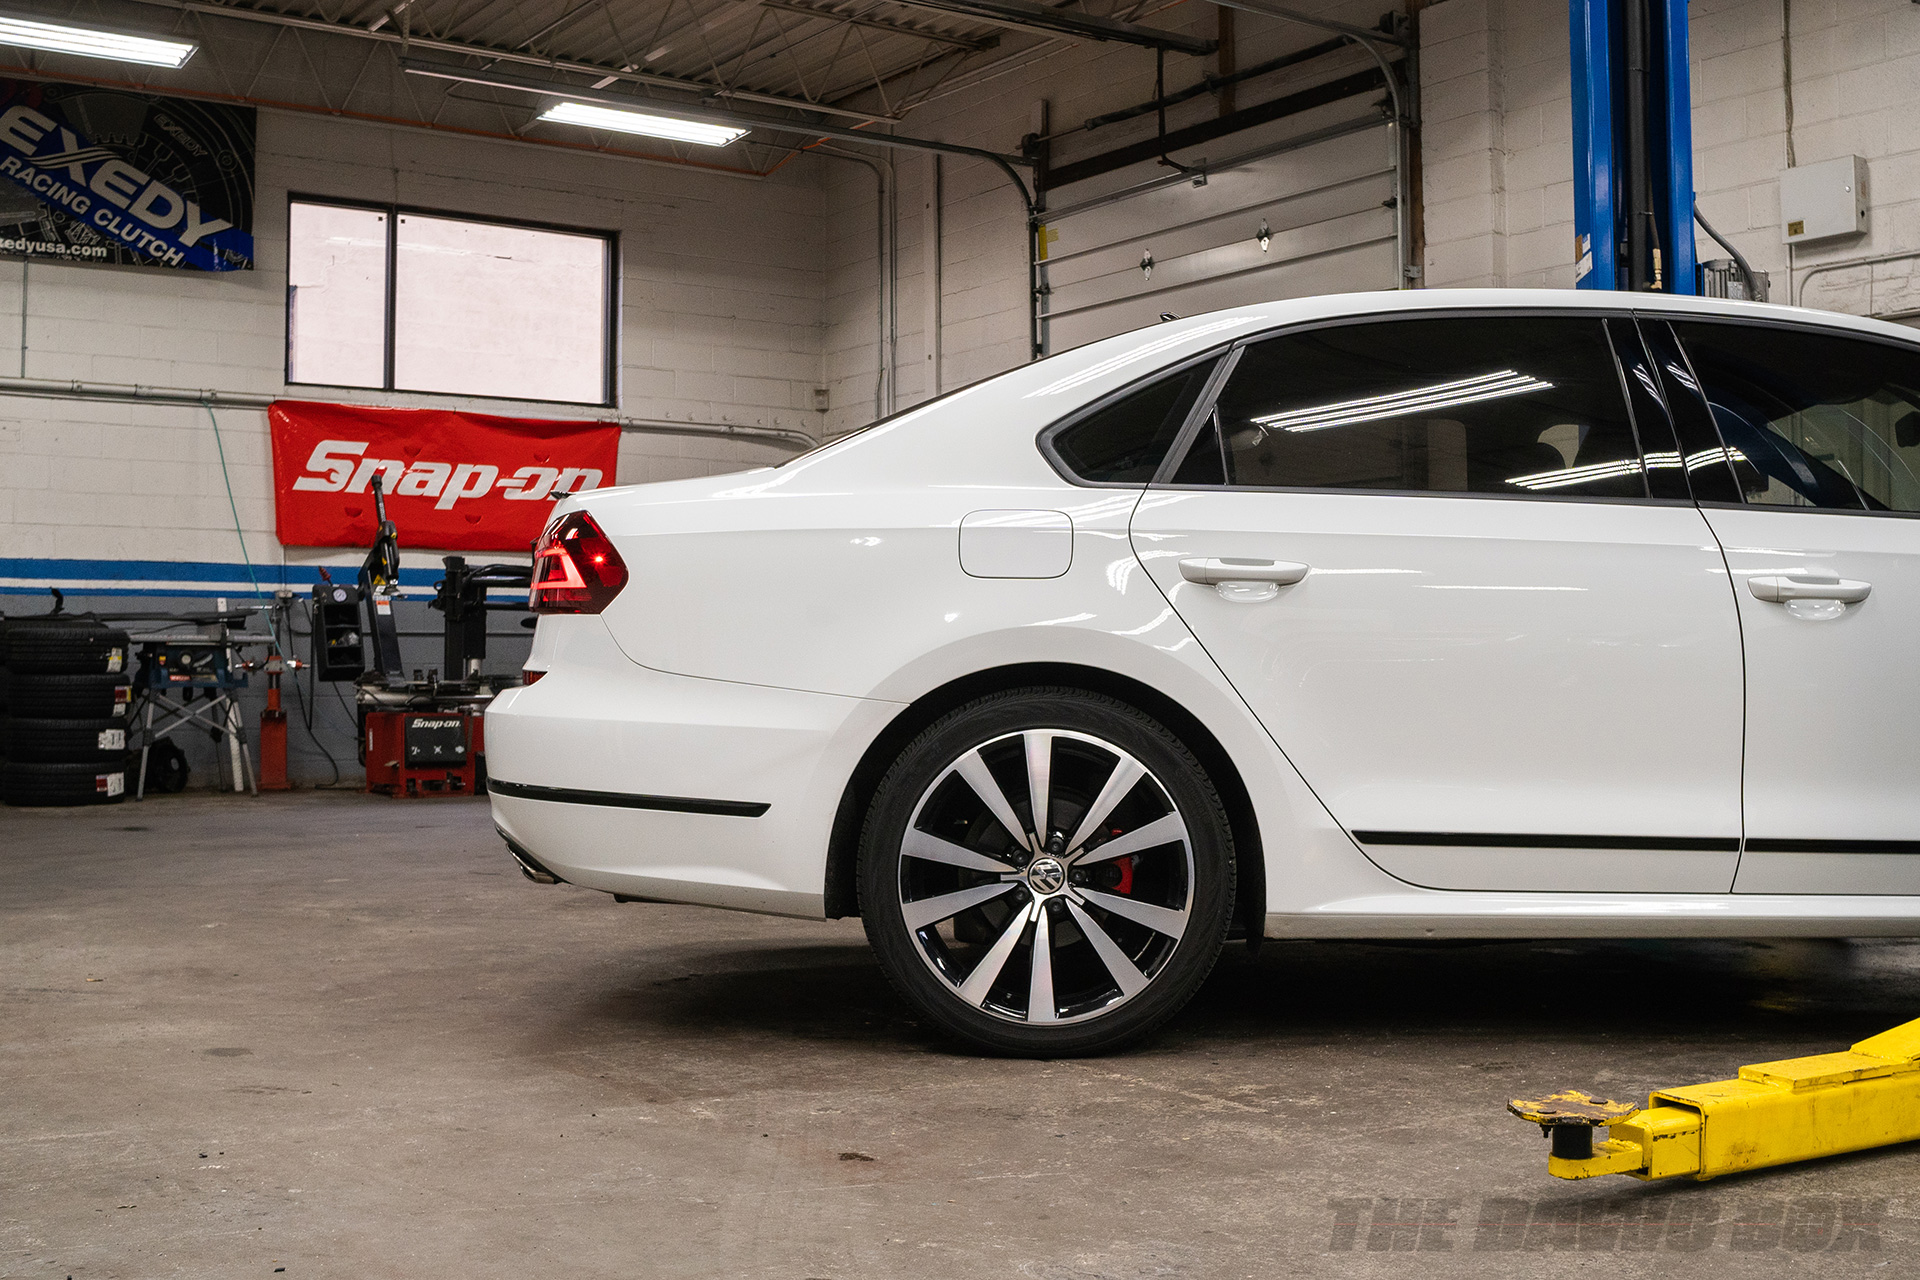 VW Jetta getting air suspension and air ride installed